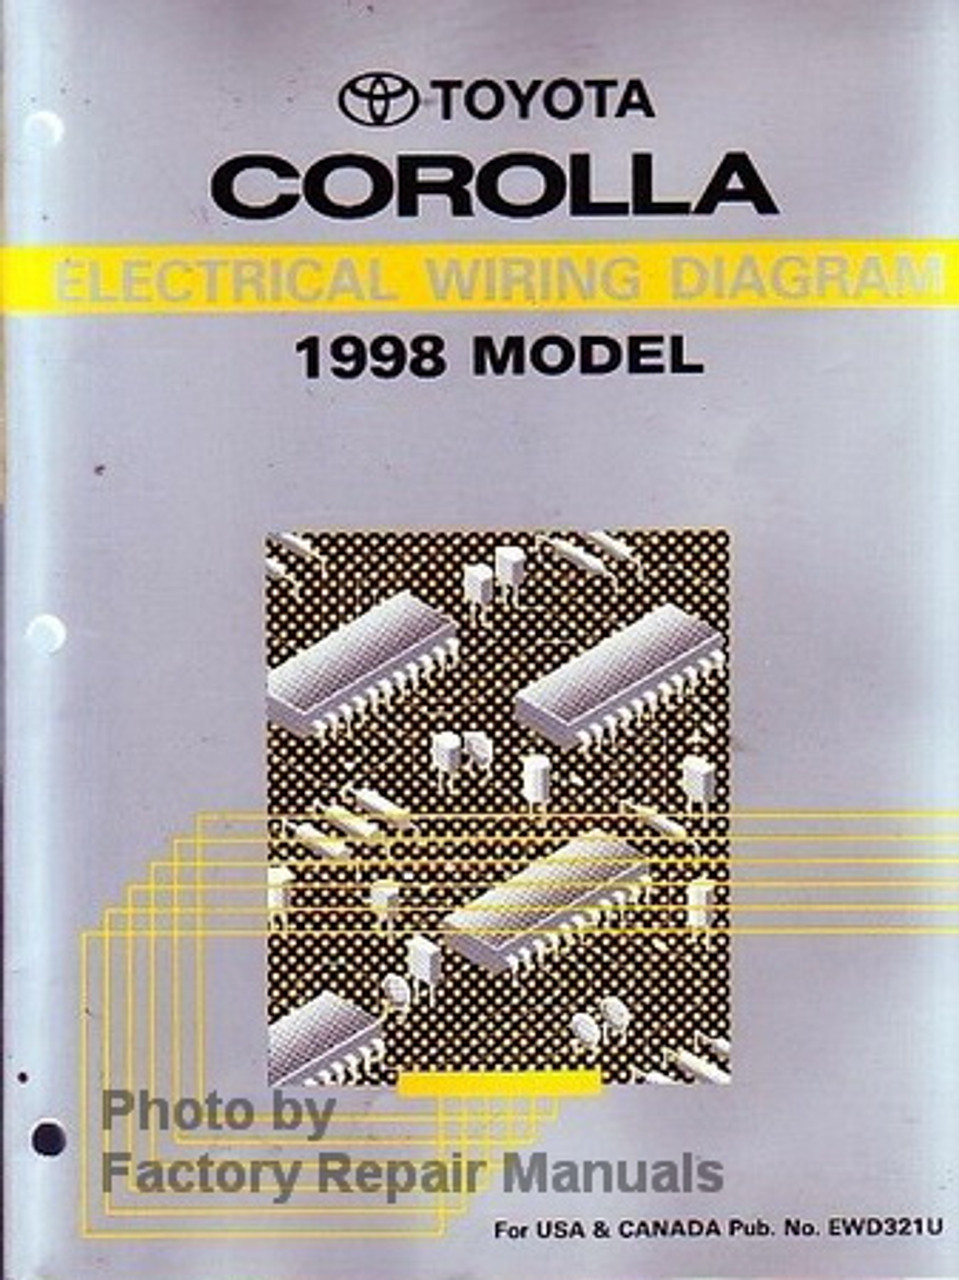 1998 Toyota Corolla Electrical Wiring Diagrams Original